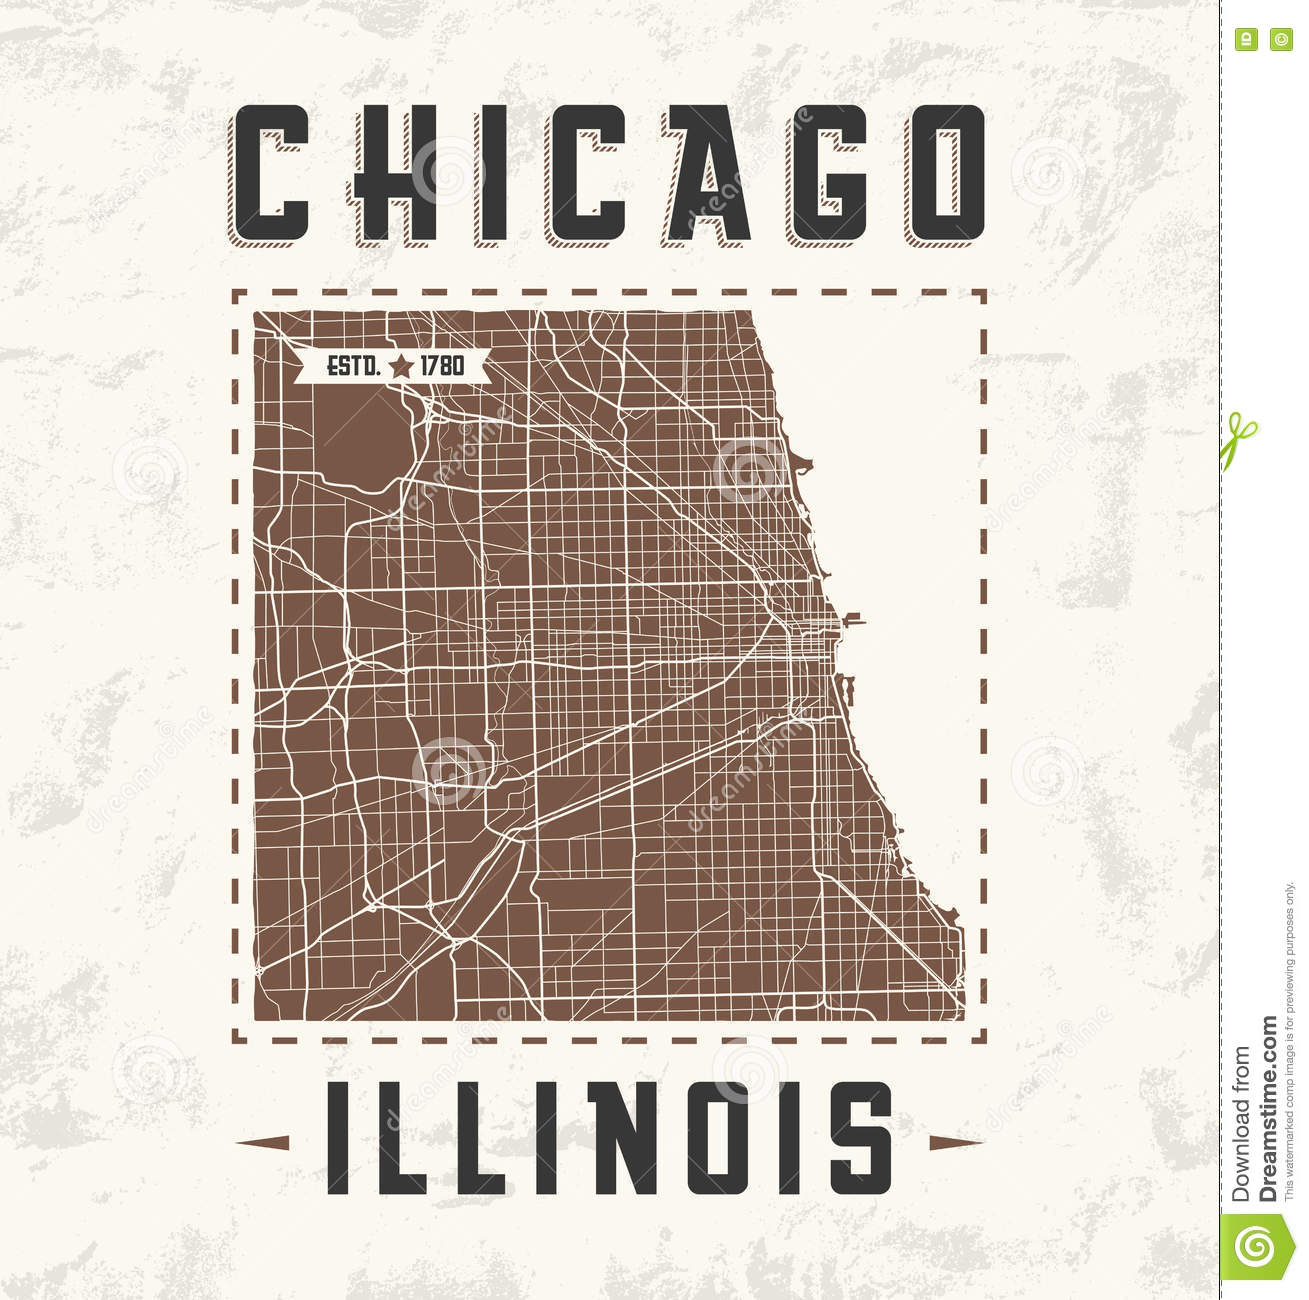 Chicago Vintage Tshirt Graphic Design With City Map Stock Vector - Chicago map download